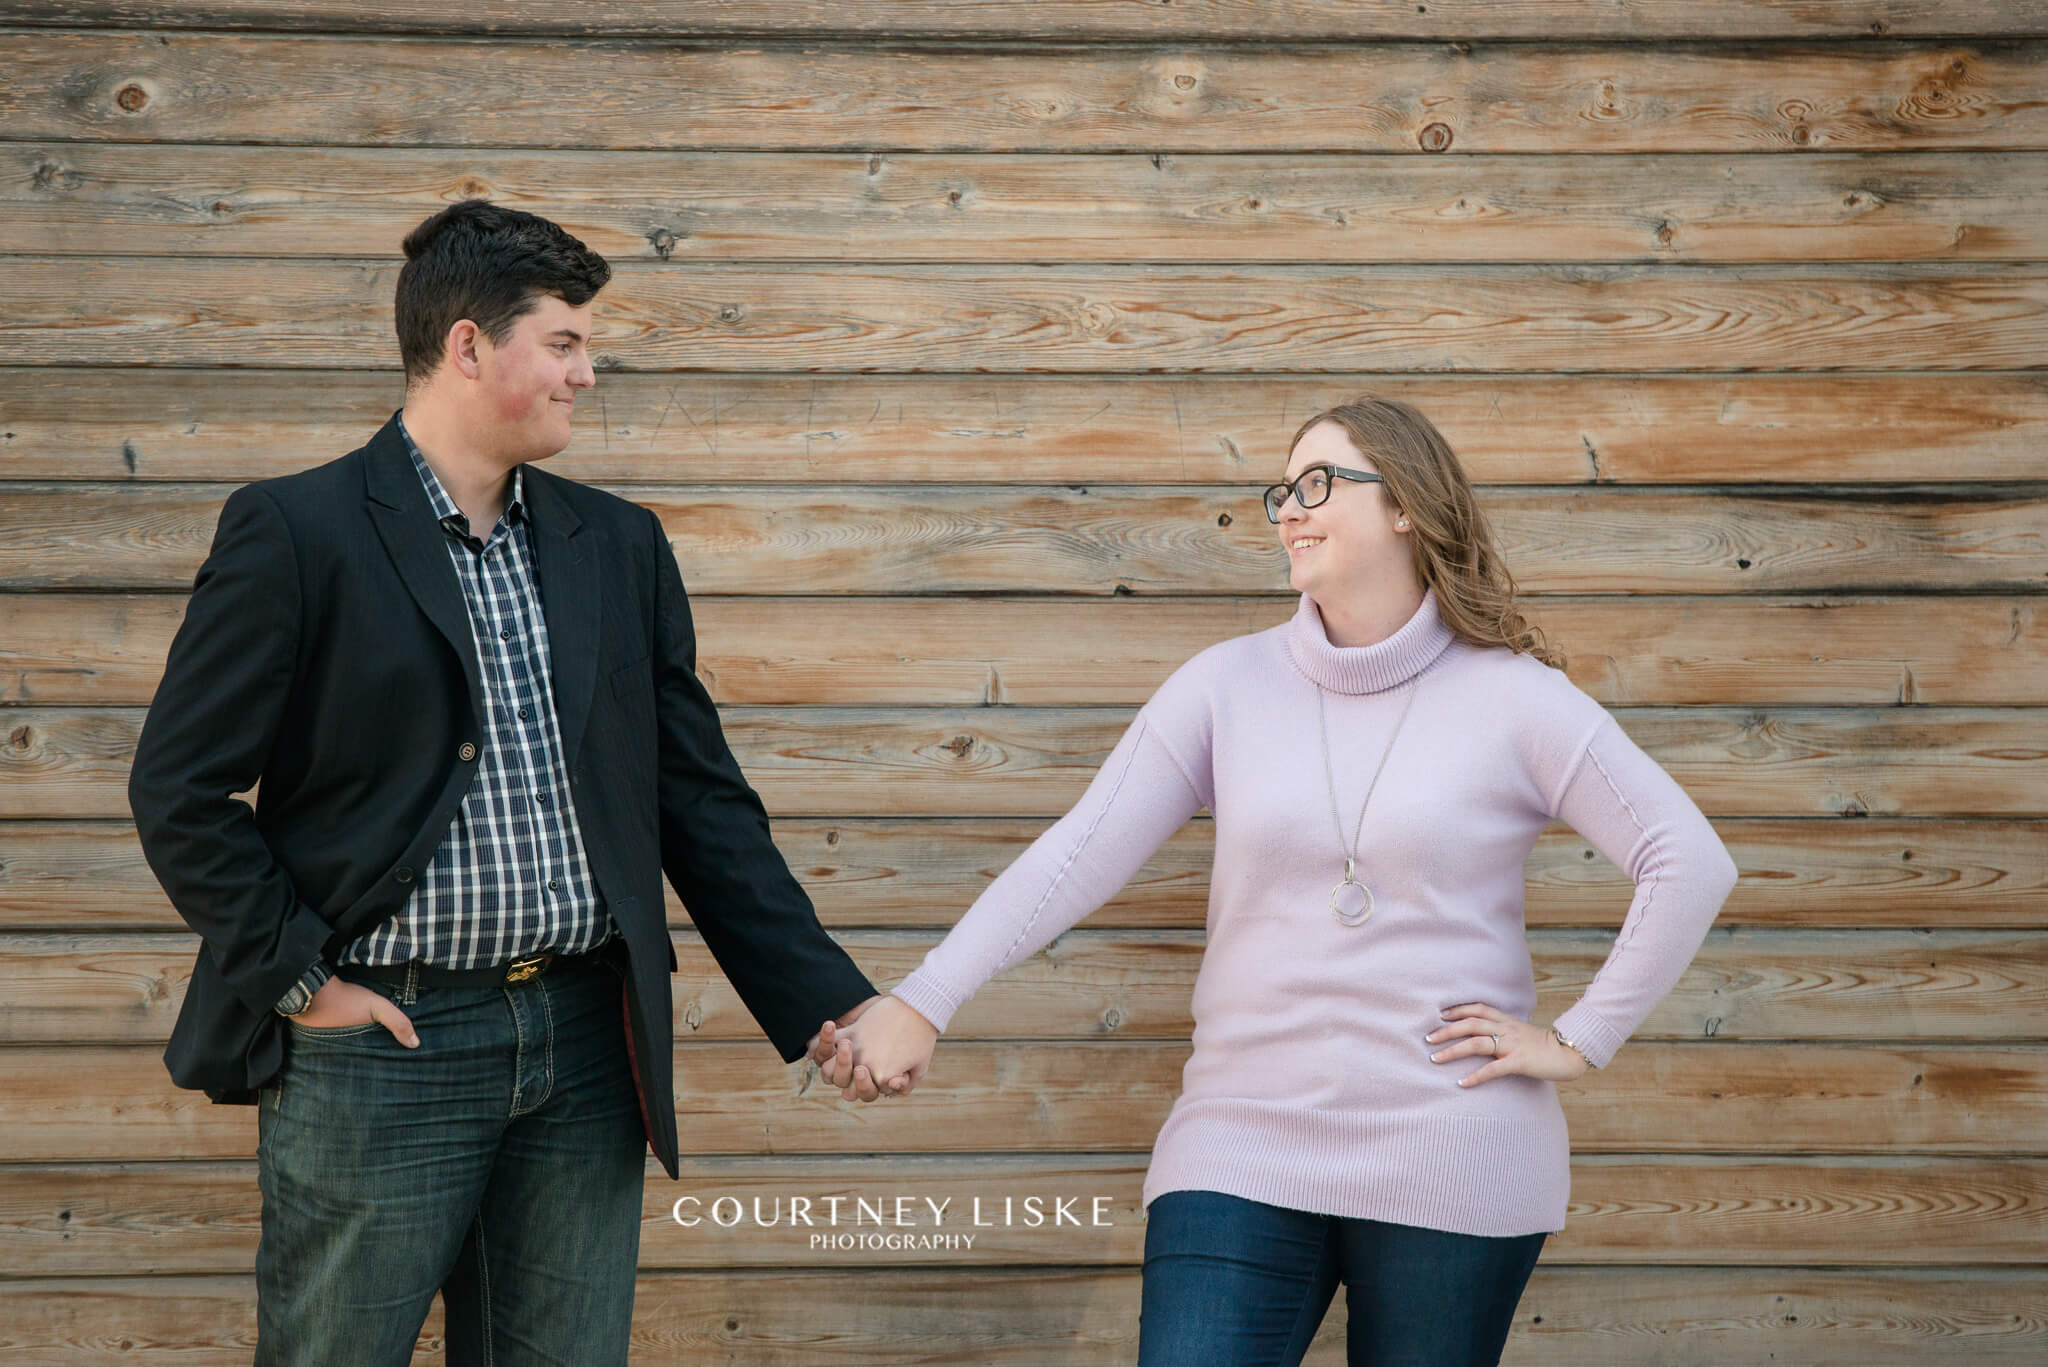 Couple stand holding hands against shiplap barnwood wall